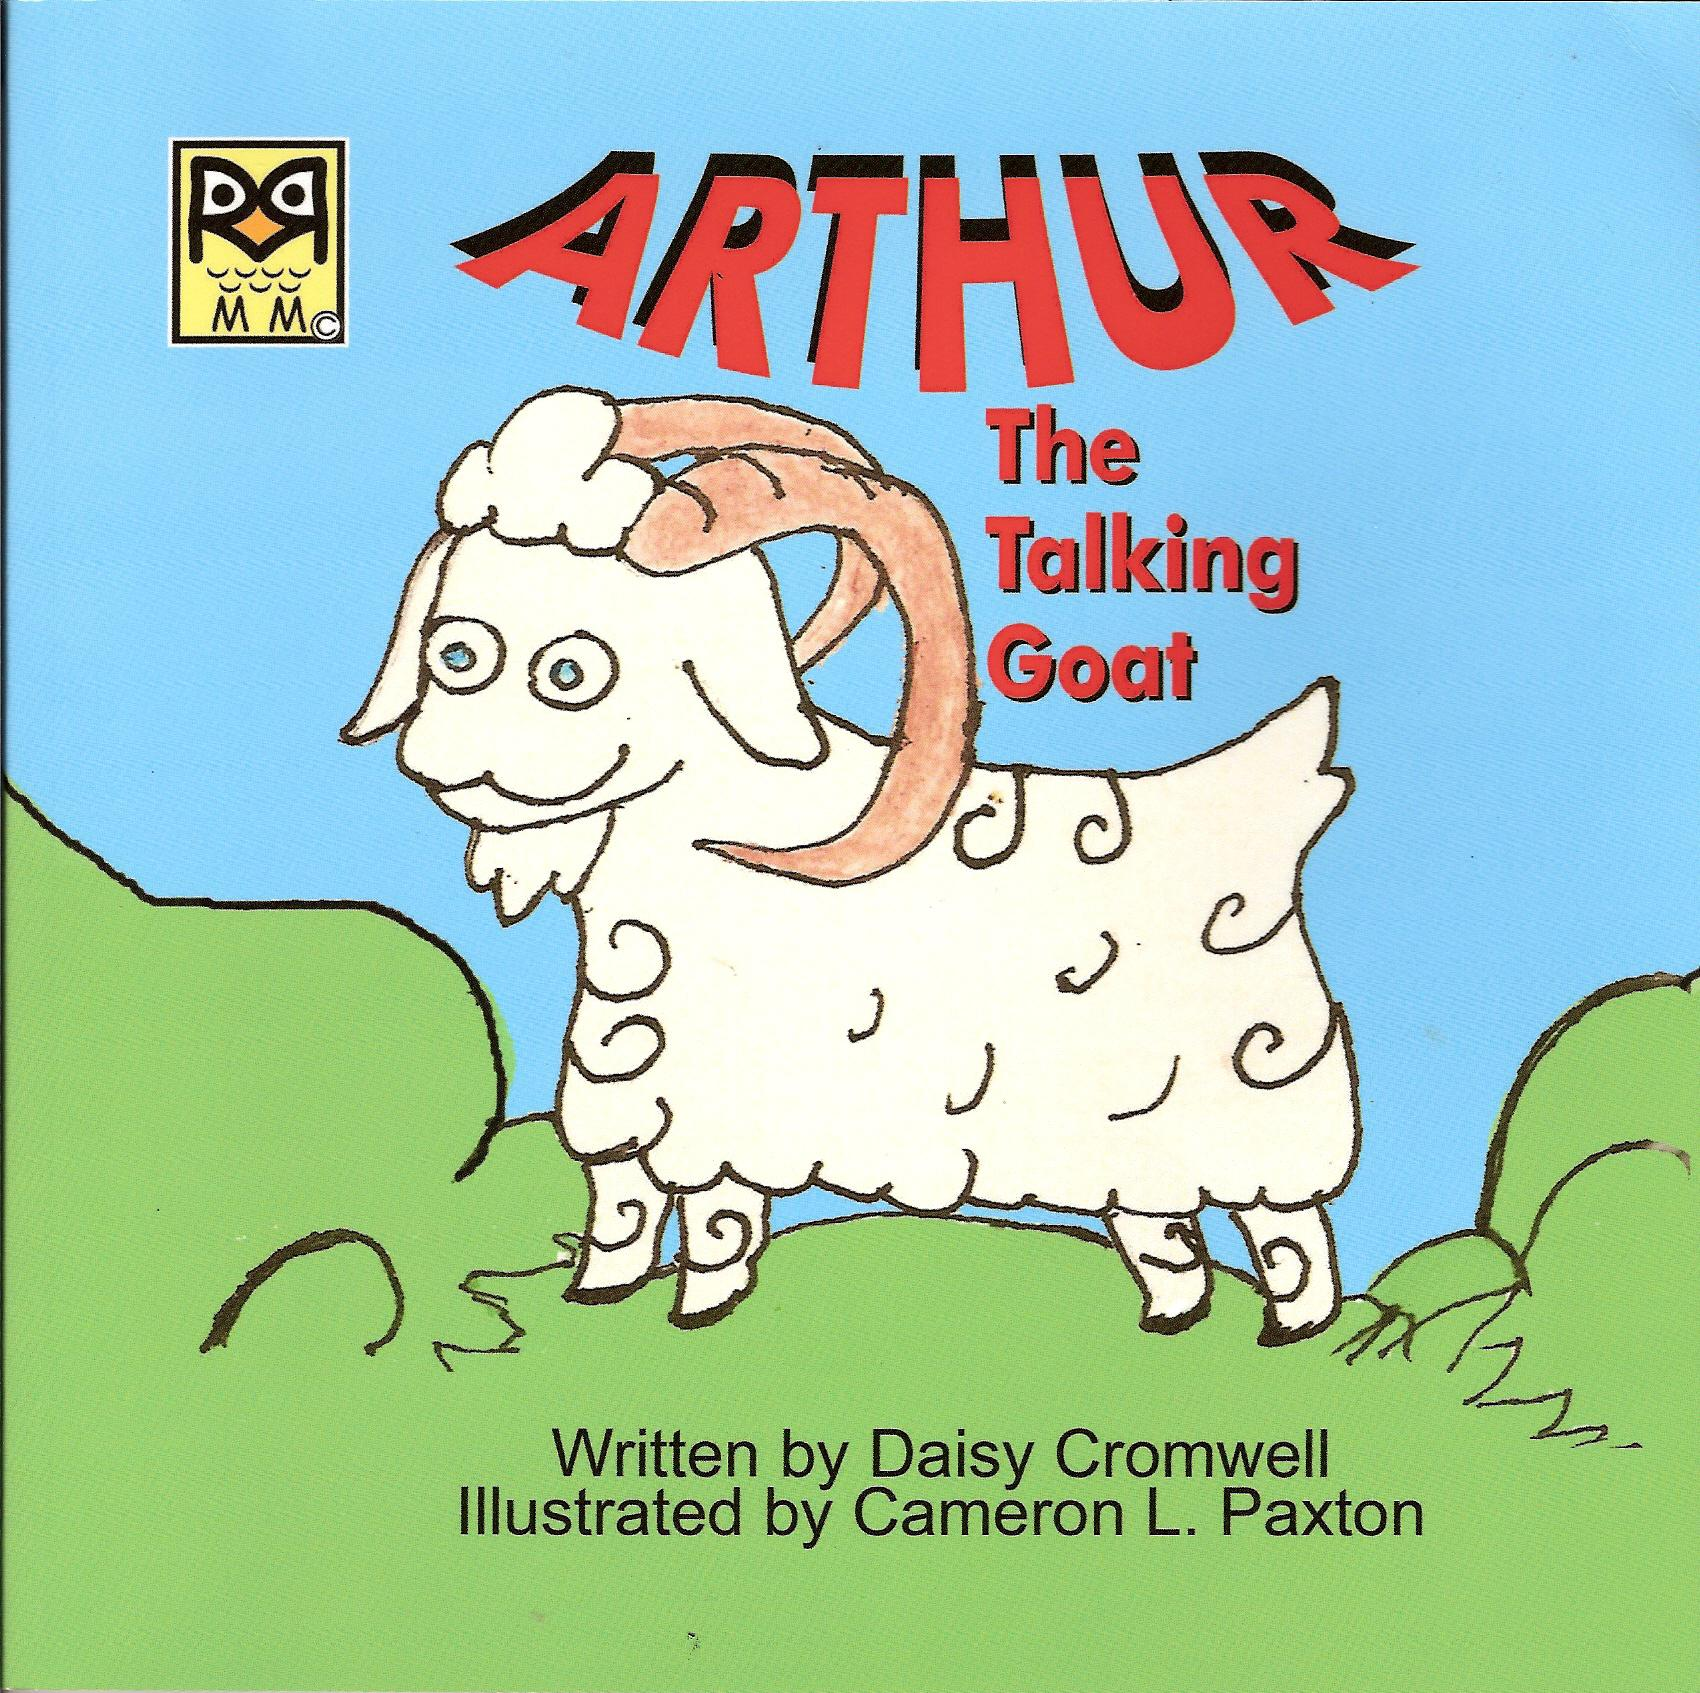 Arthur the Talking Goat